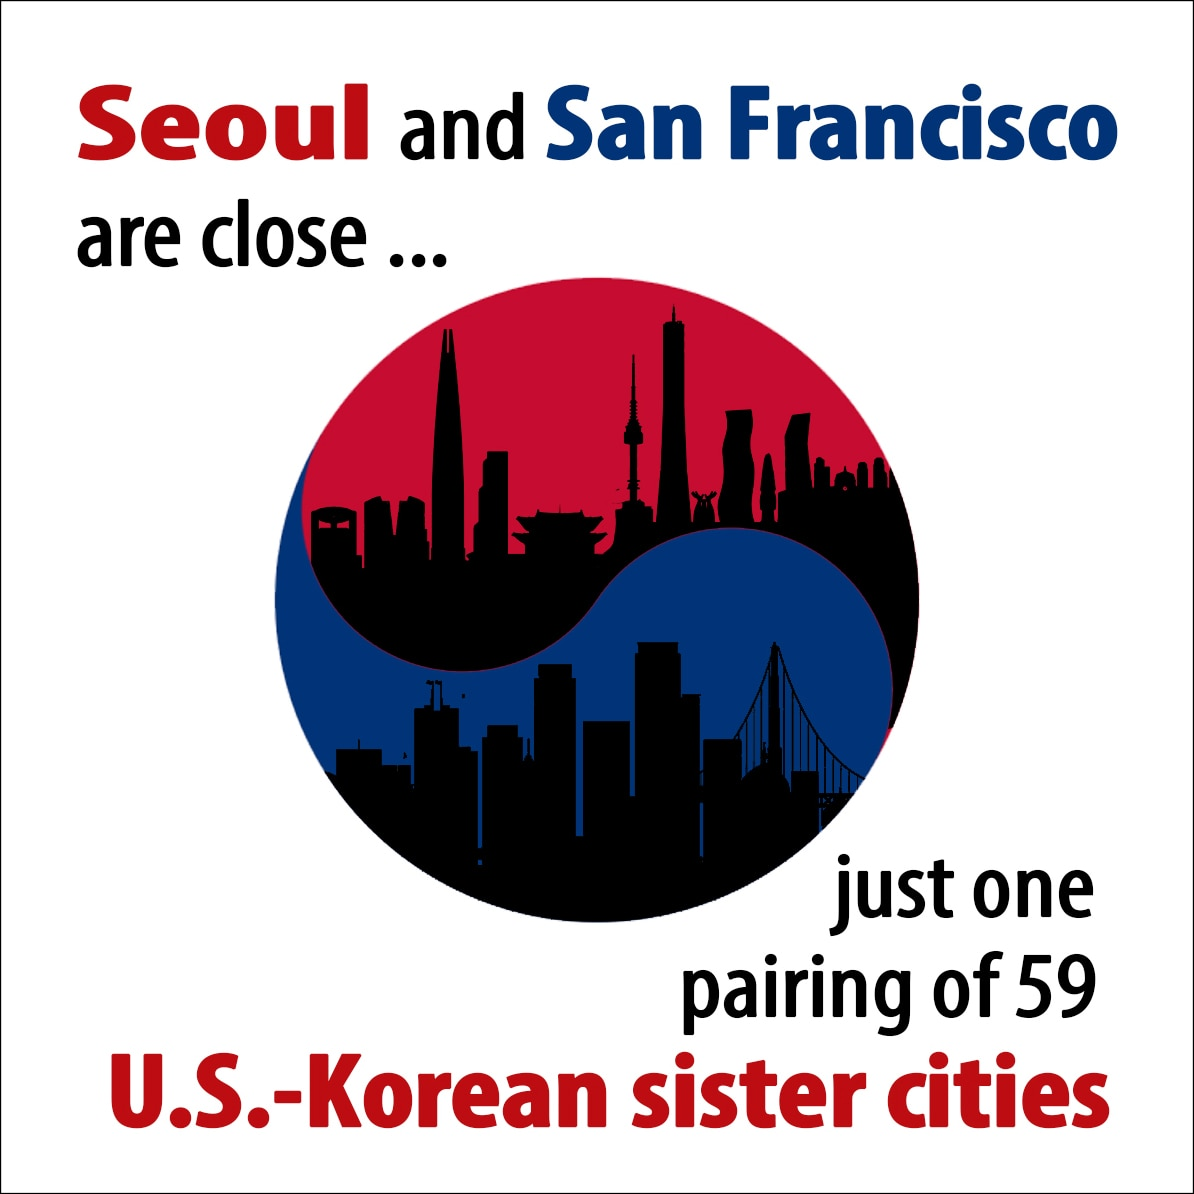 Silhouettes of Seoul and San Francisco in yin-yang symbol